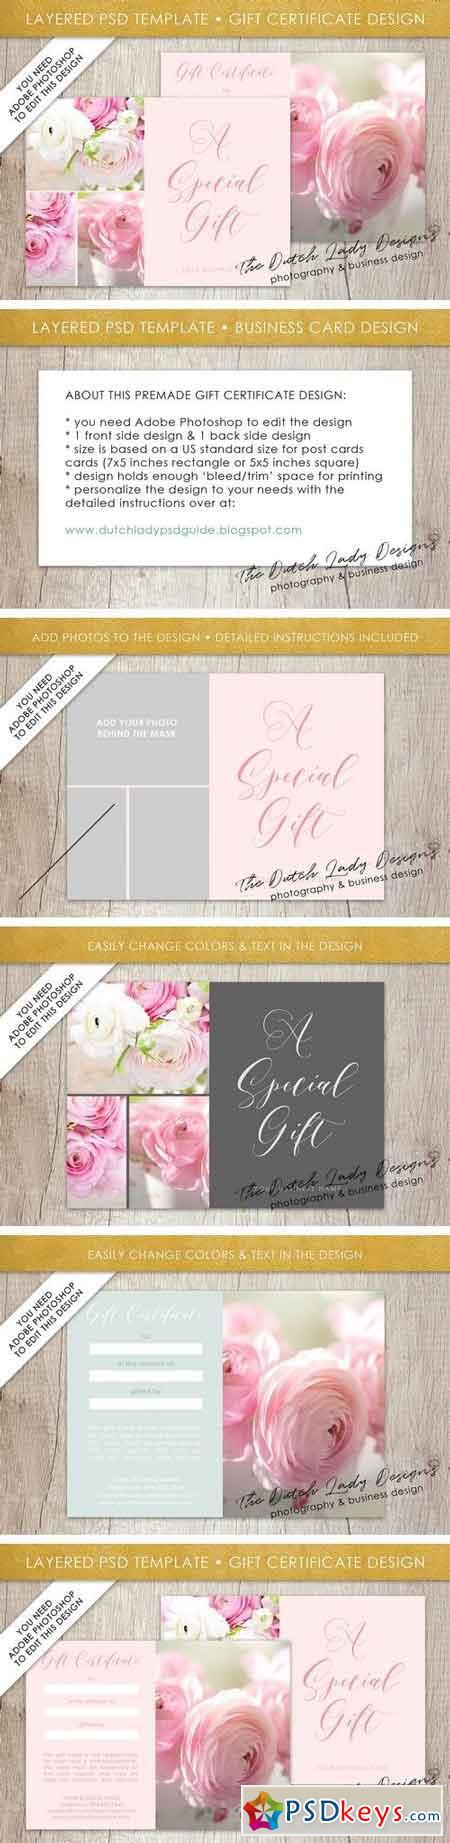 PSD Photo Gift Card Template #2 1929759